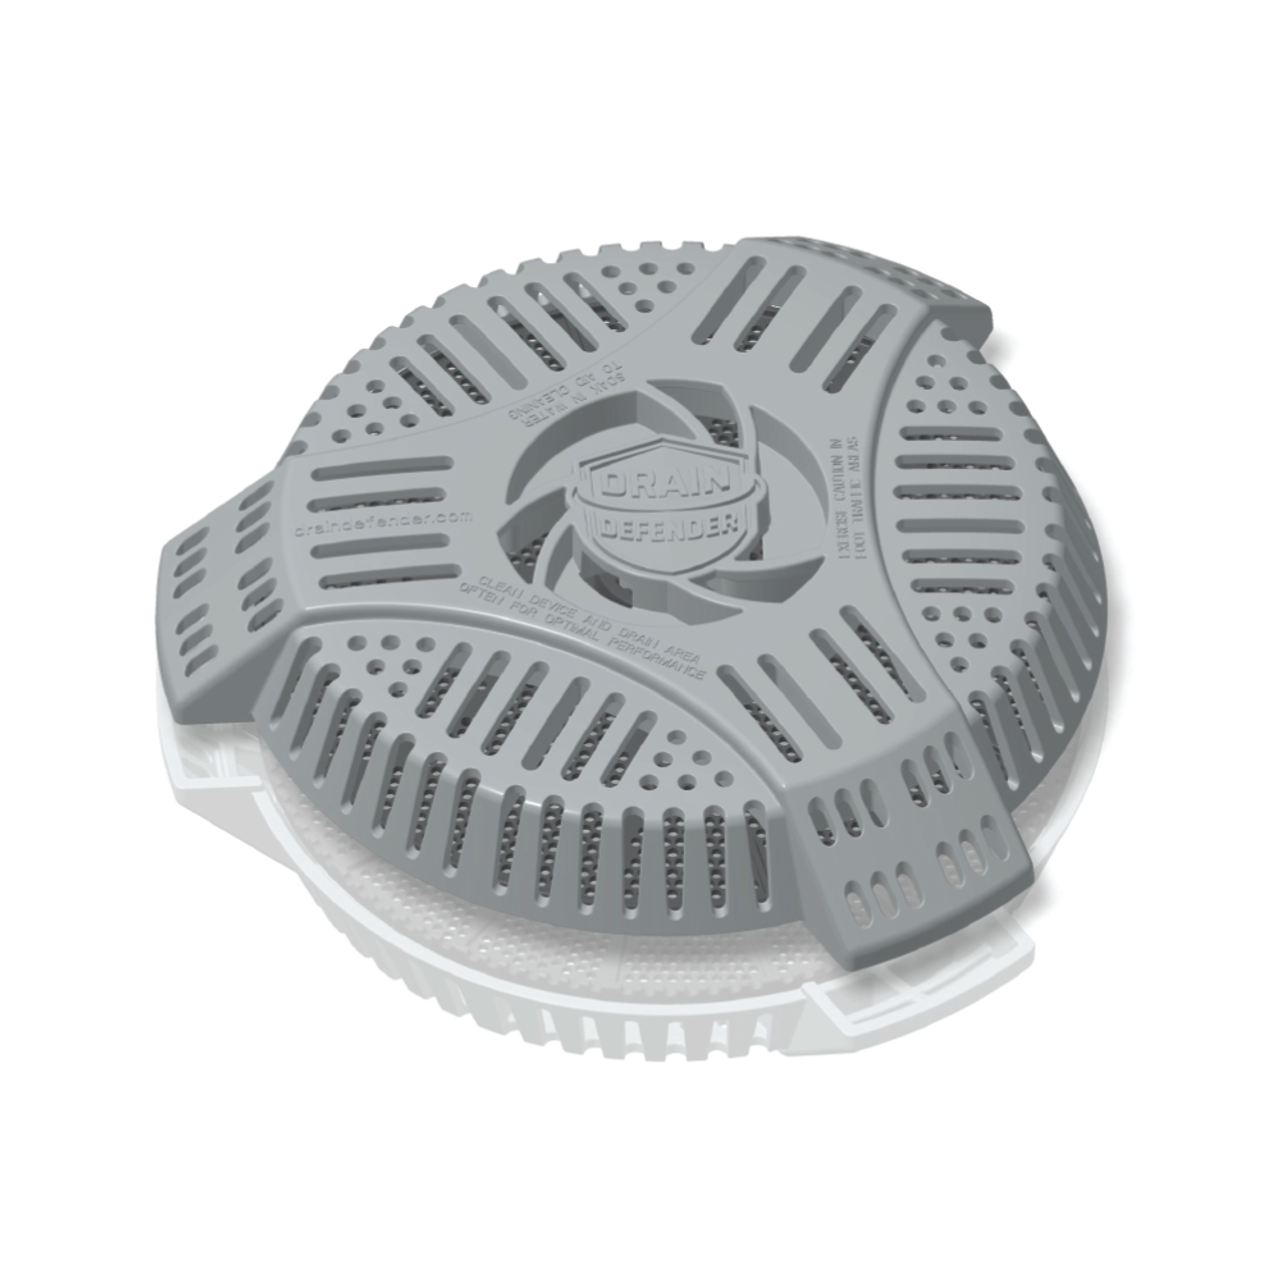 Drain Defender Prevents Clogs and Flooded Basements from Yard Waste